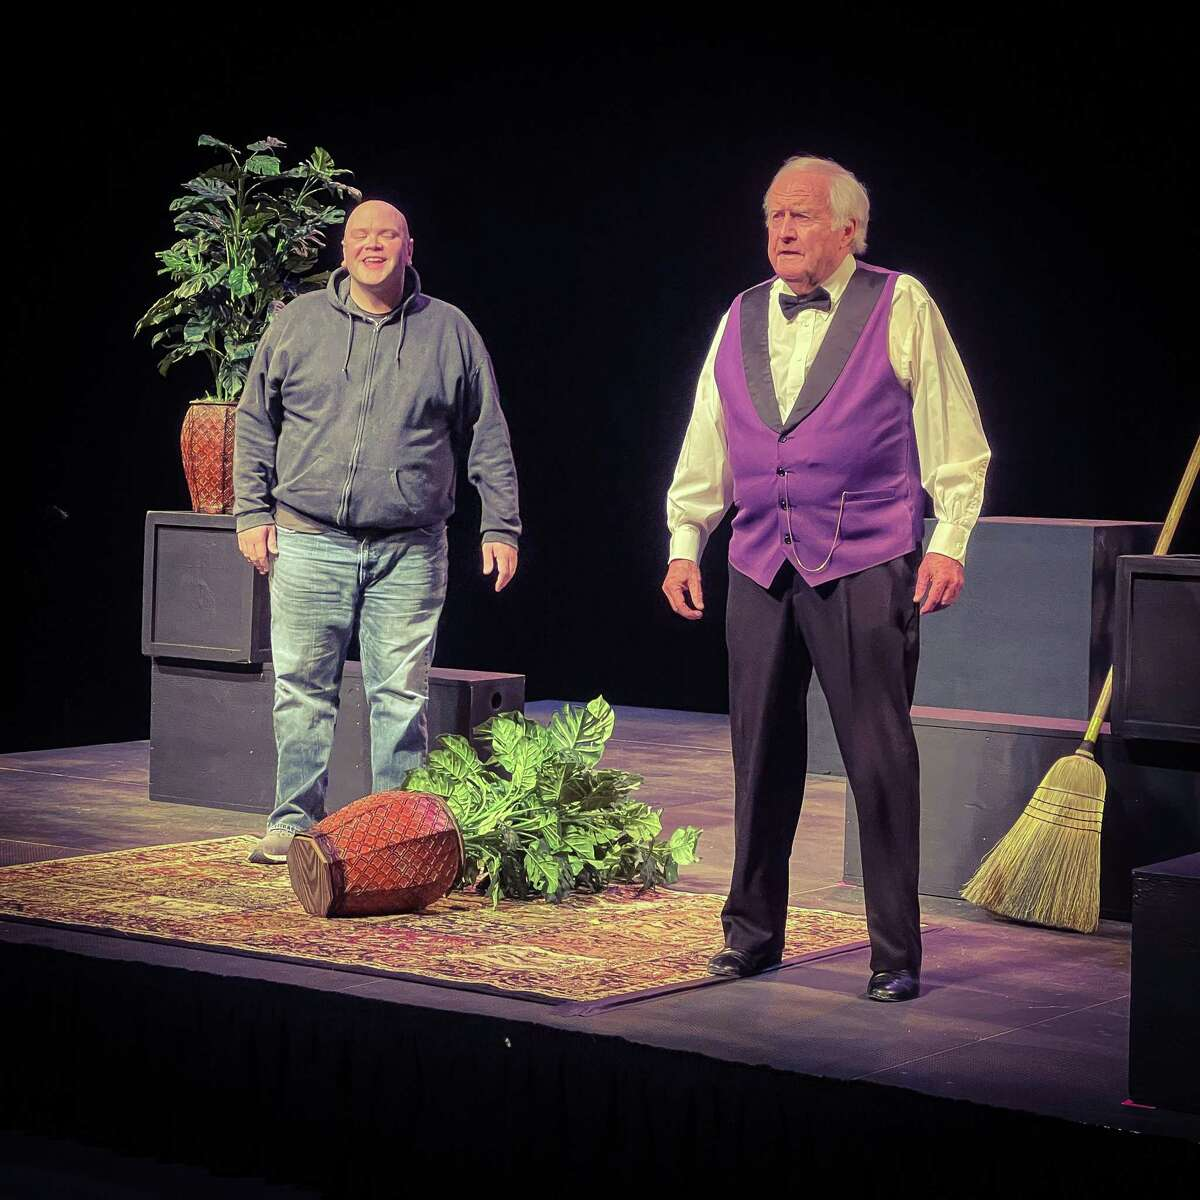 One of the Warner Theatre's productions in the 9th Annual International Playwrights Festival is